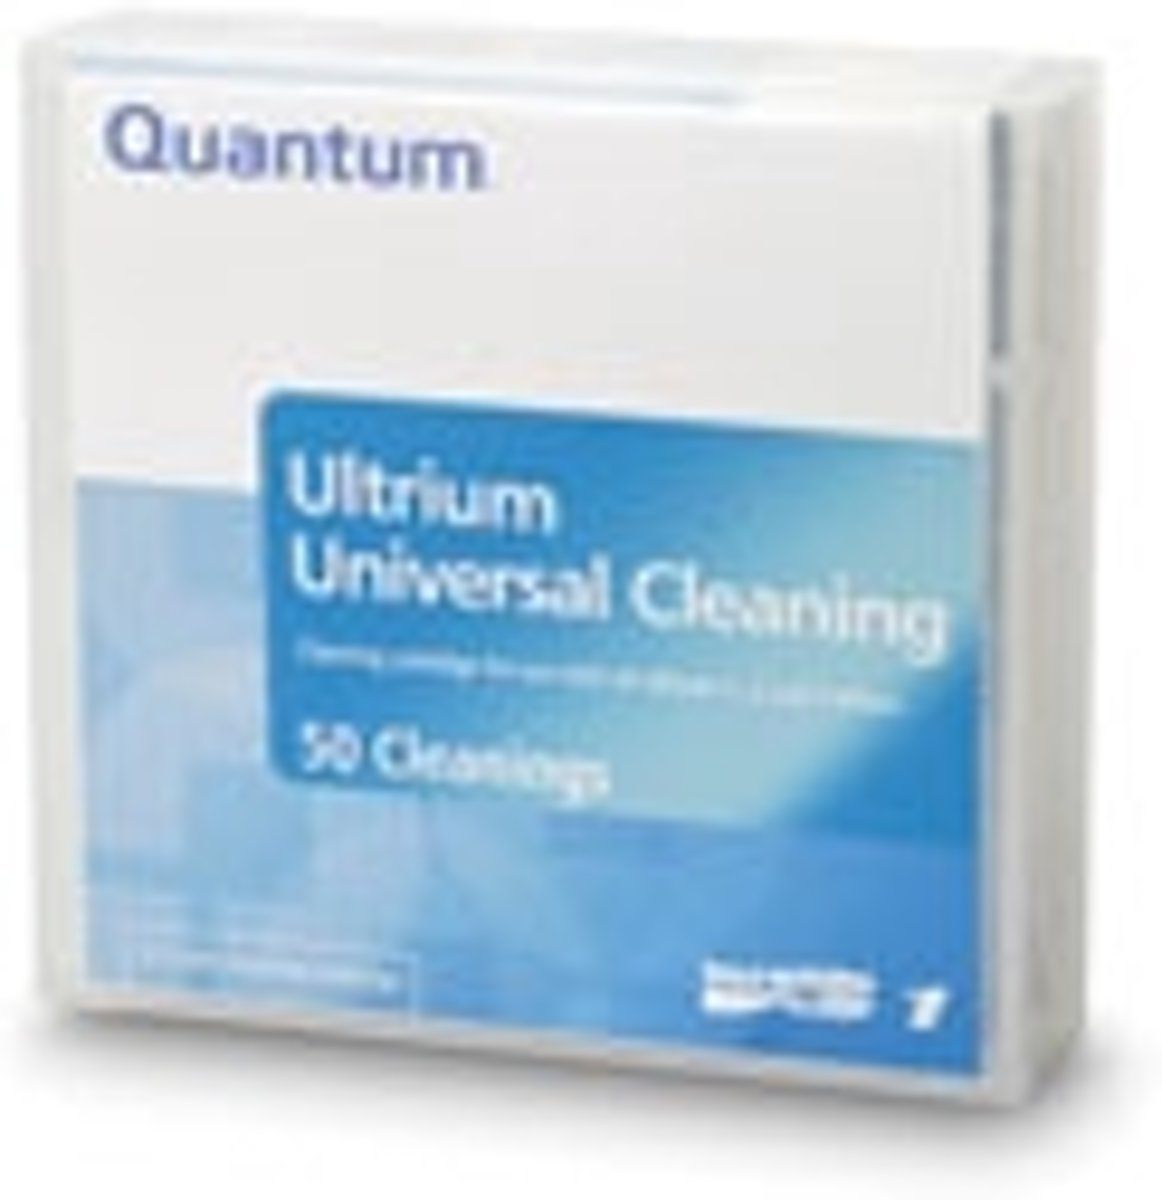 Cleaning cartridge, LTO Universal